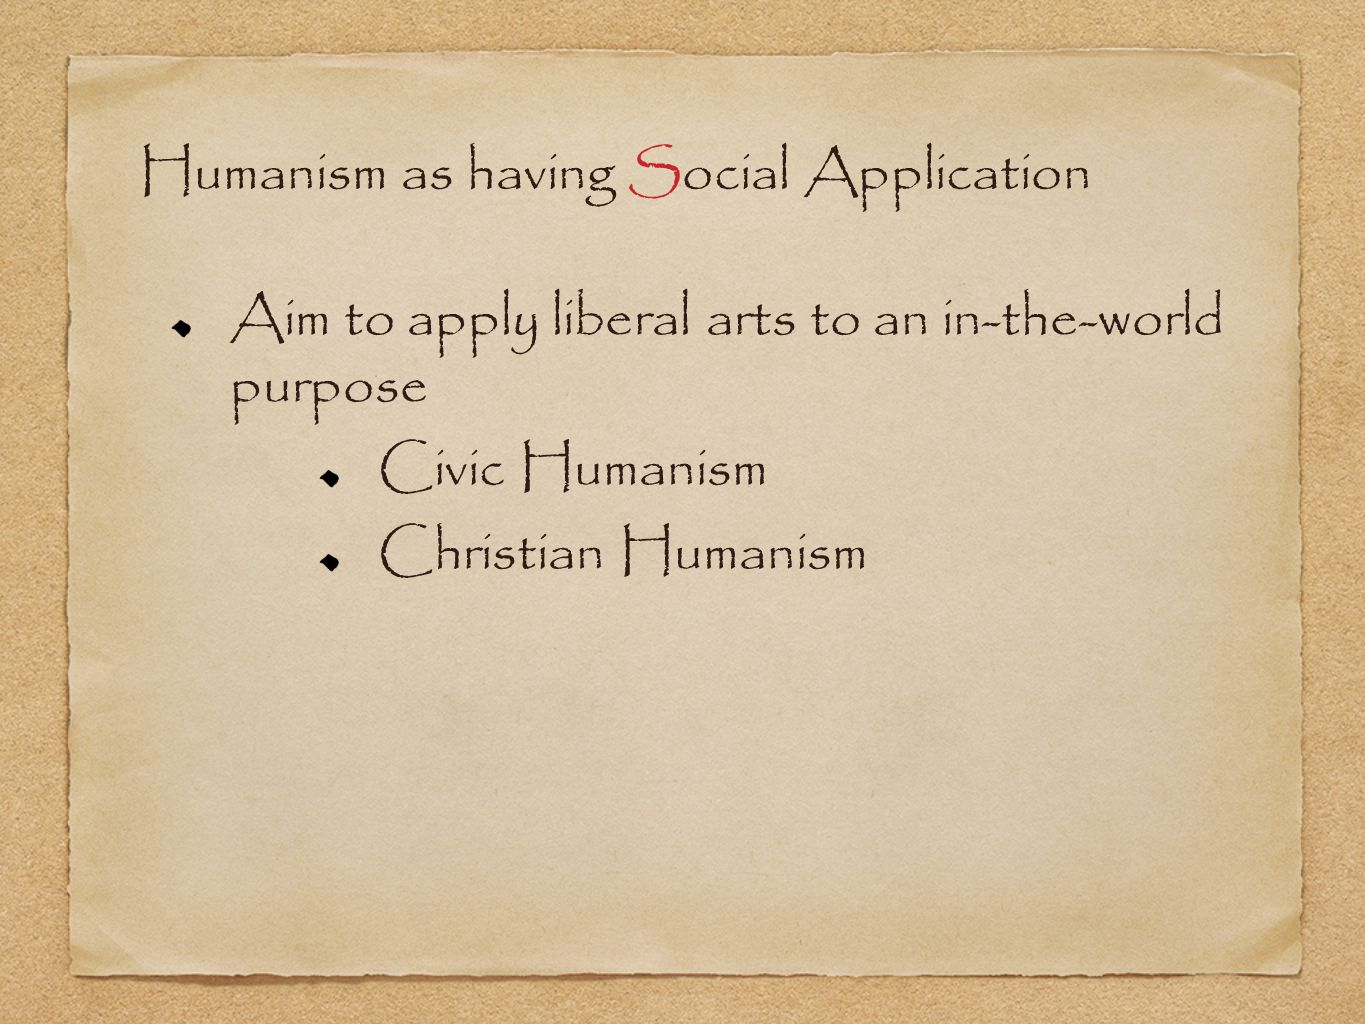 Humanism as having Social Application Aim to apply liberal arts to an in-the-world purpose Civic Humanism Christian Humanism